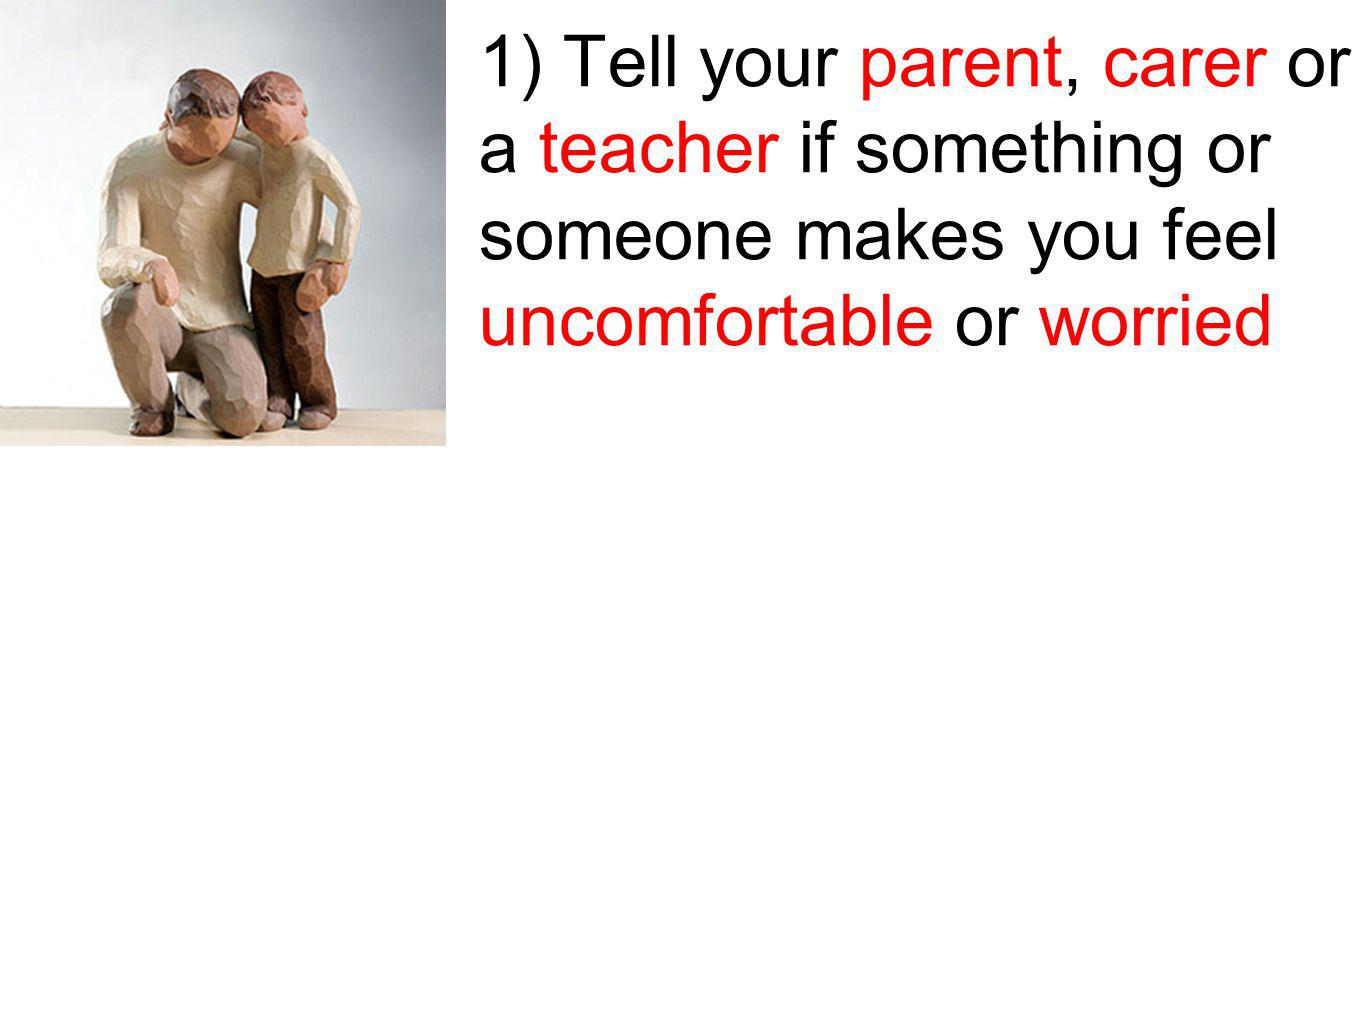 1) Tell your parent, carer or a teacher if something or someone makes you feel uncomfortable or worried